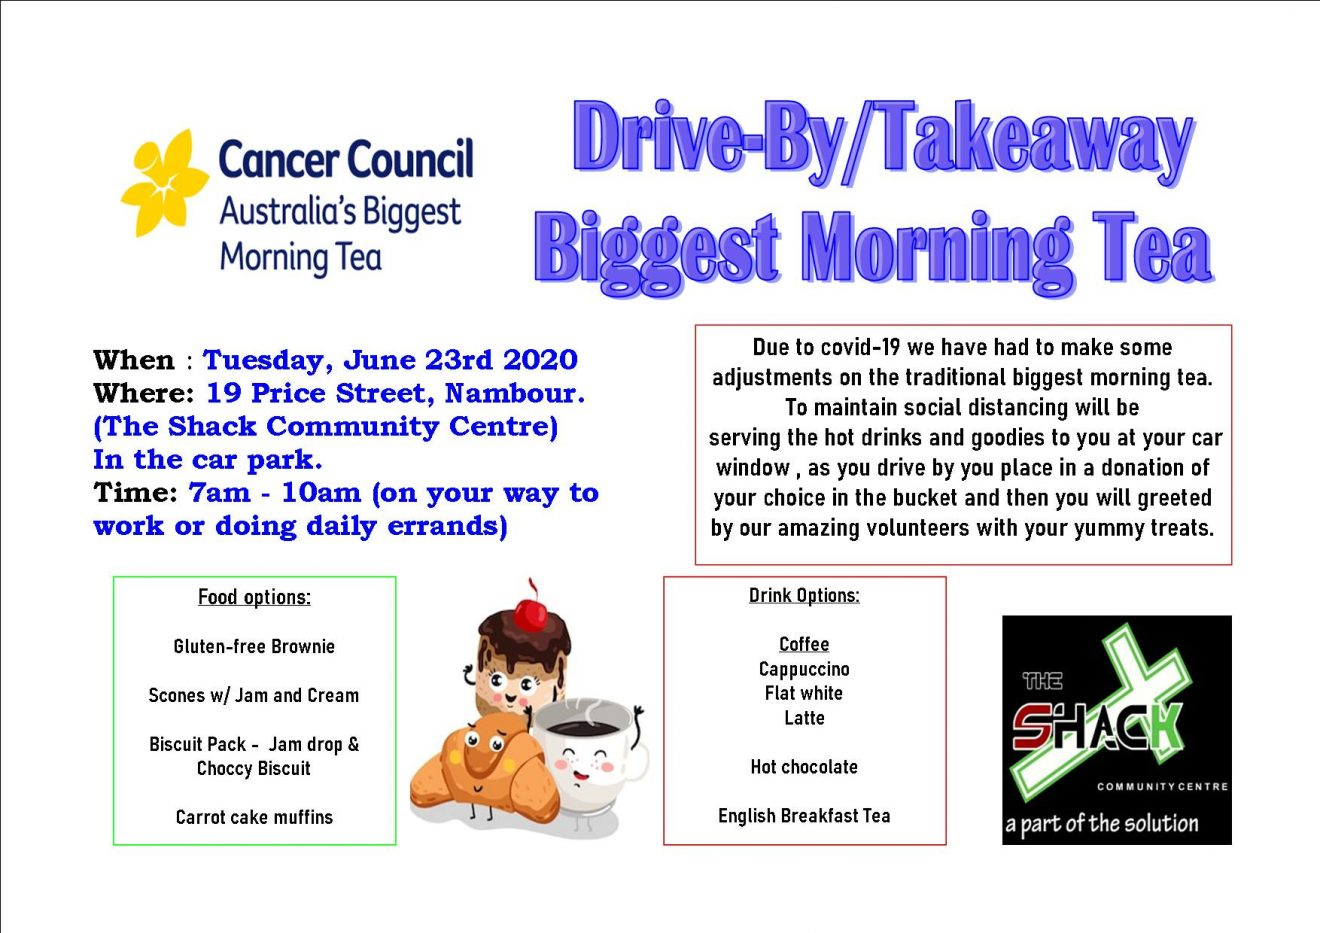 Drive-By/Takeaway Biggest Morning Tea @ The Shack Community Centre